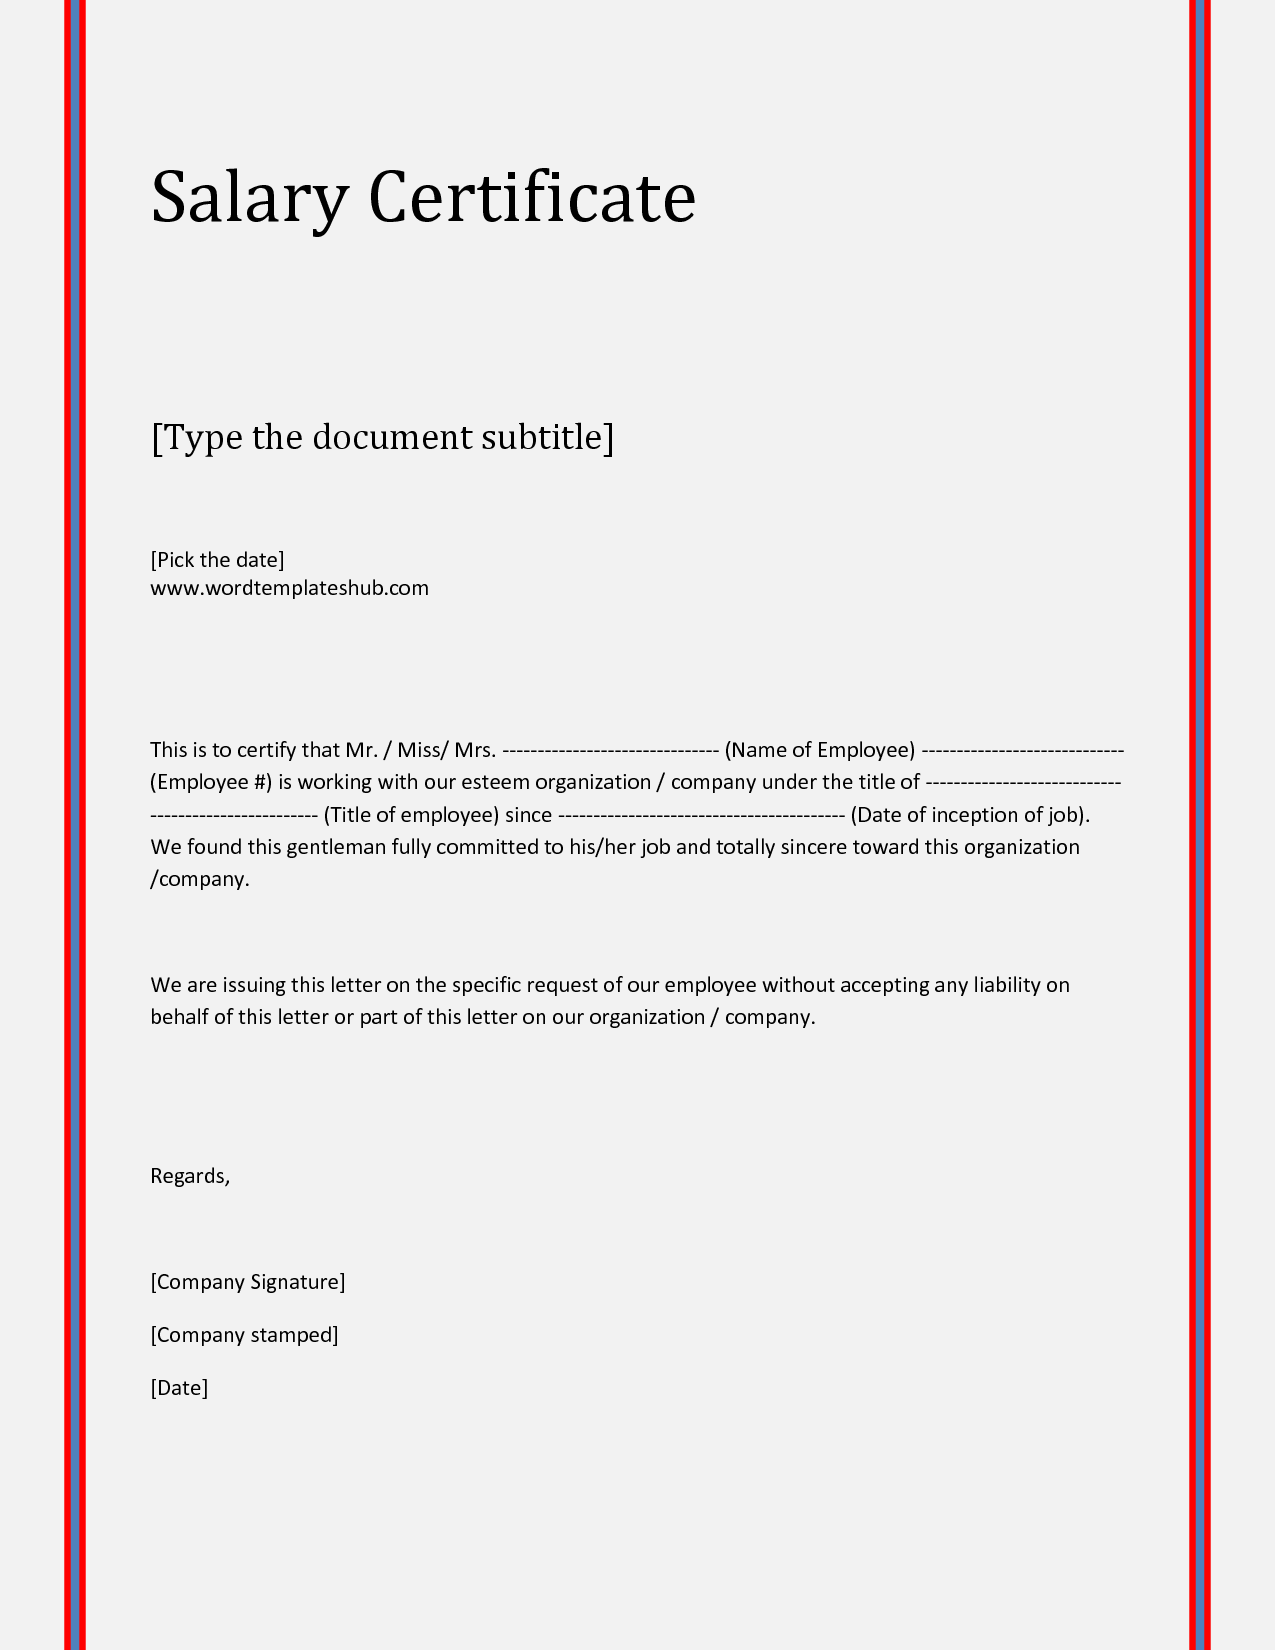 Request Letter For Certificate Employment Nurses Cover Proof